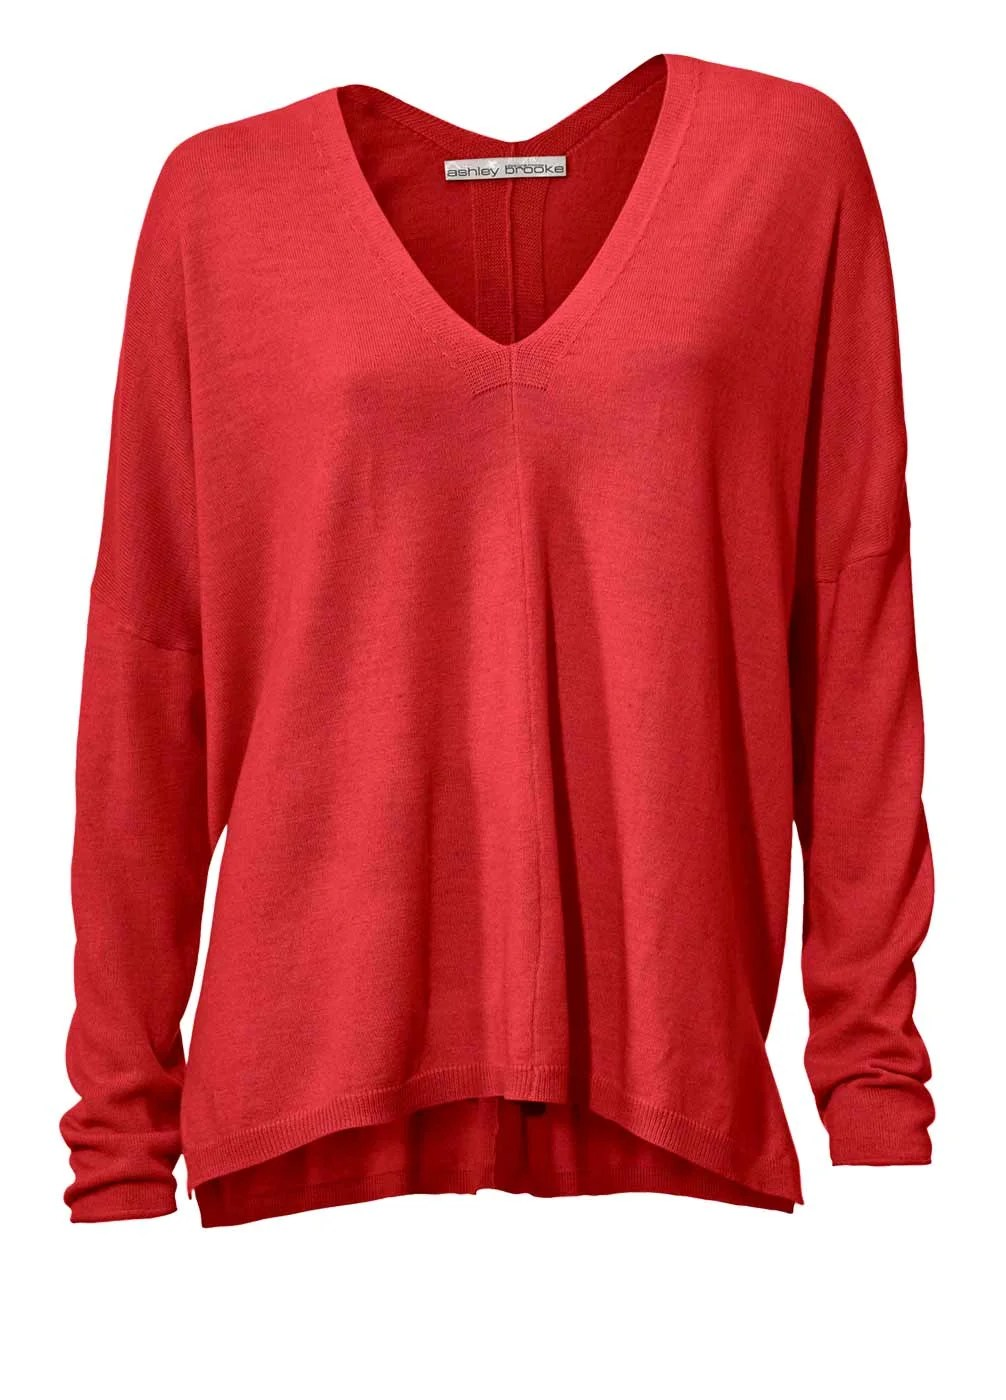 135.112 ASHLEY BROOKE Damen Designer-Oversized-Pullover m. Kaschmir Rot Wolle Casual